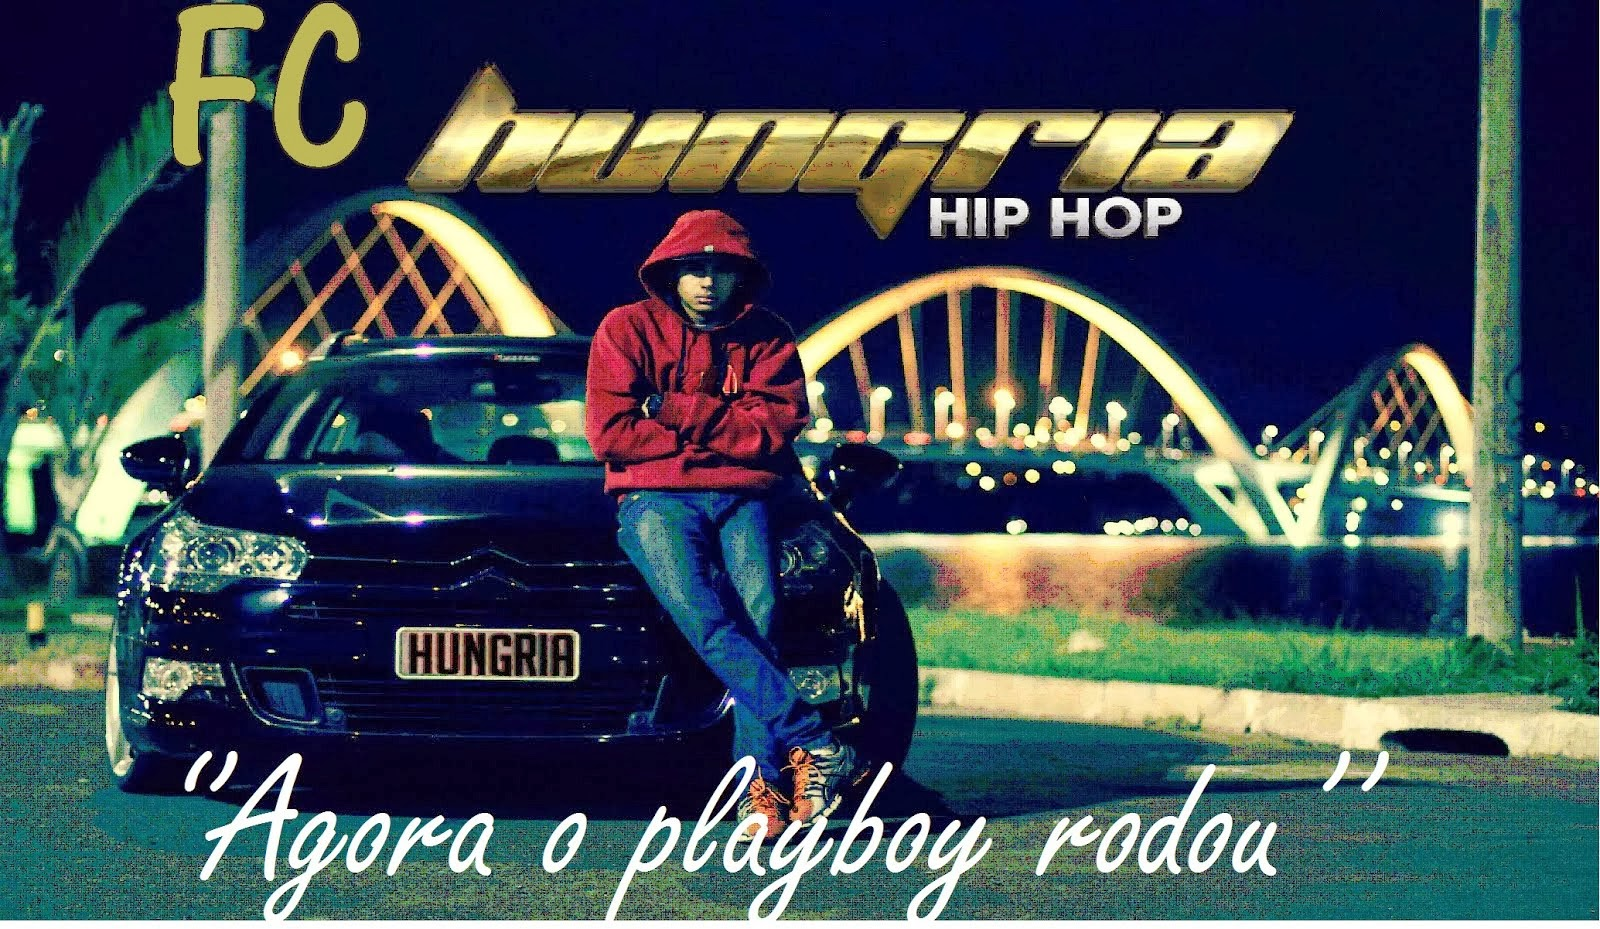 Fotos de hungria hiphop